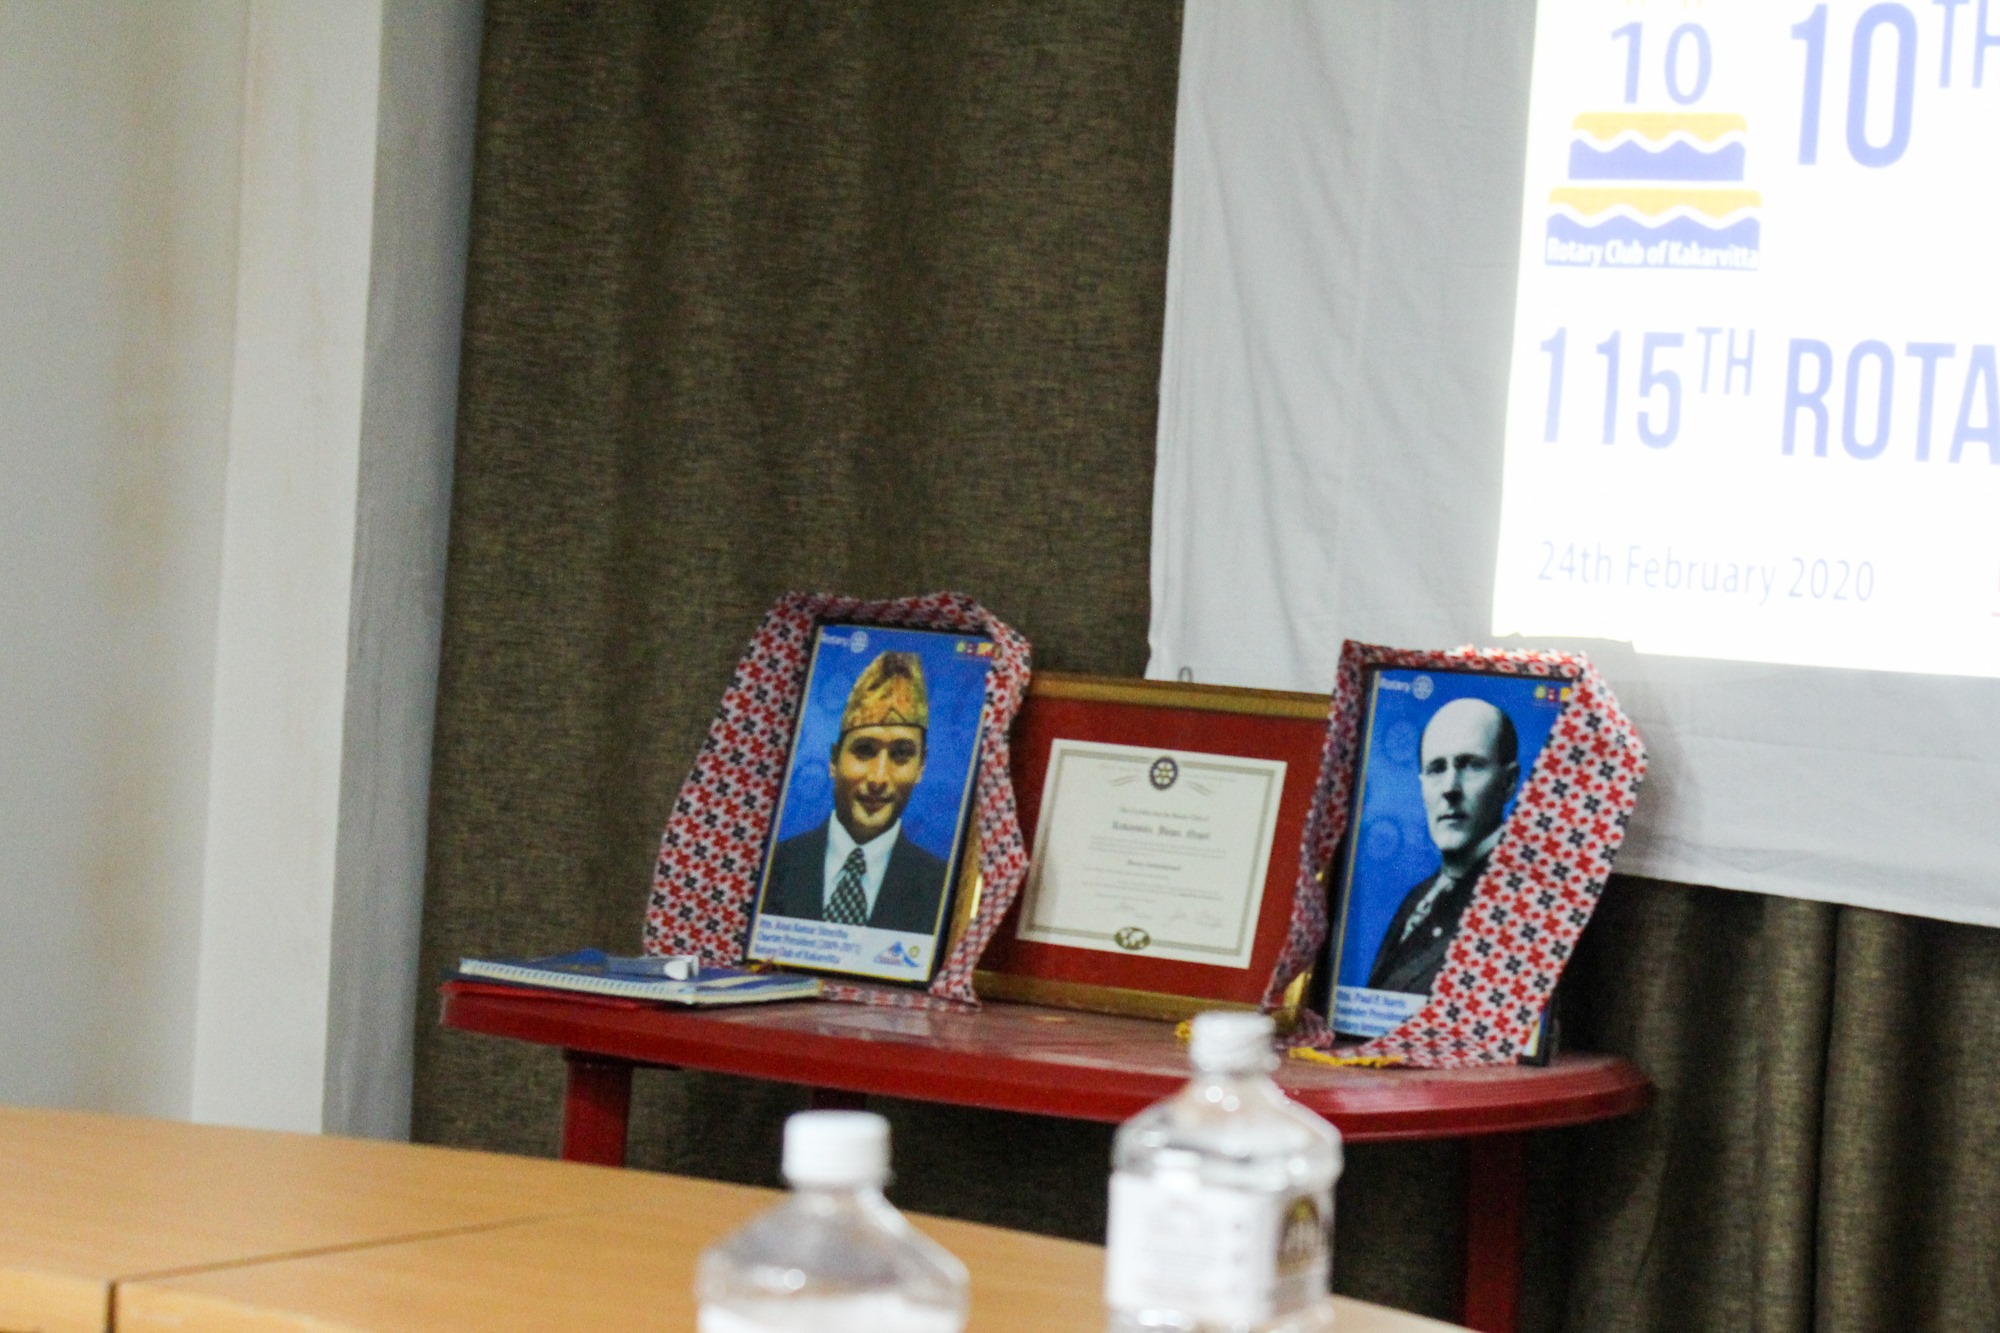 10th Charter Day 115th Rotary International Day 20